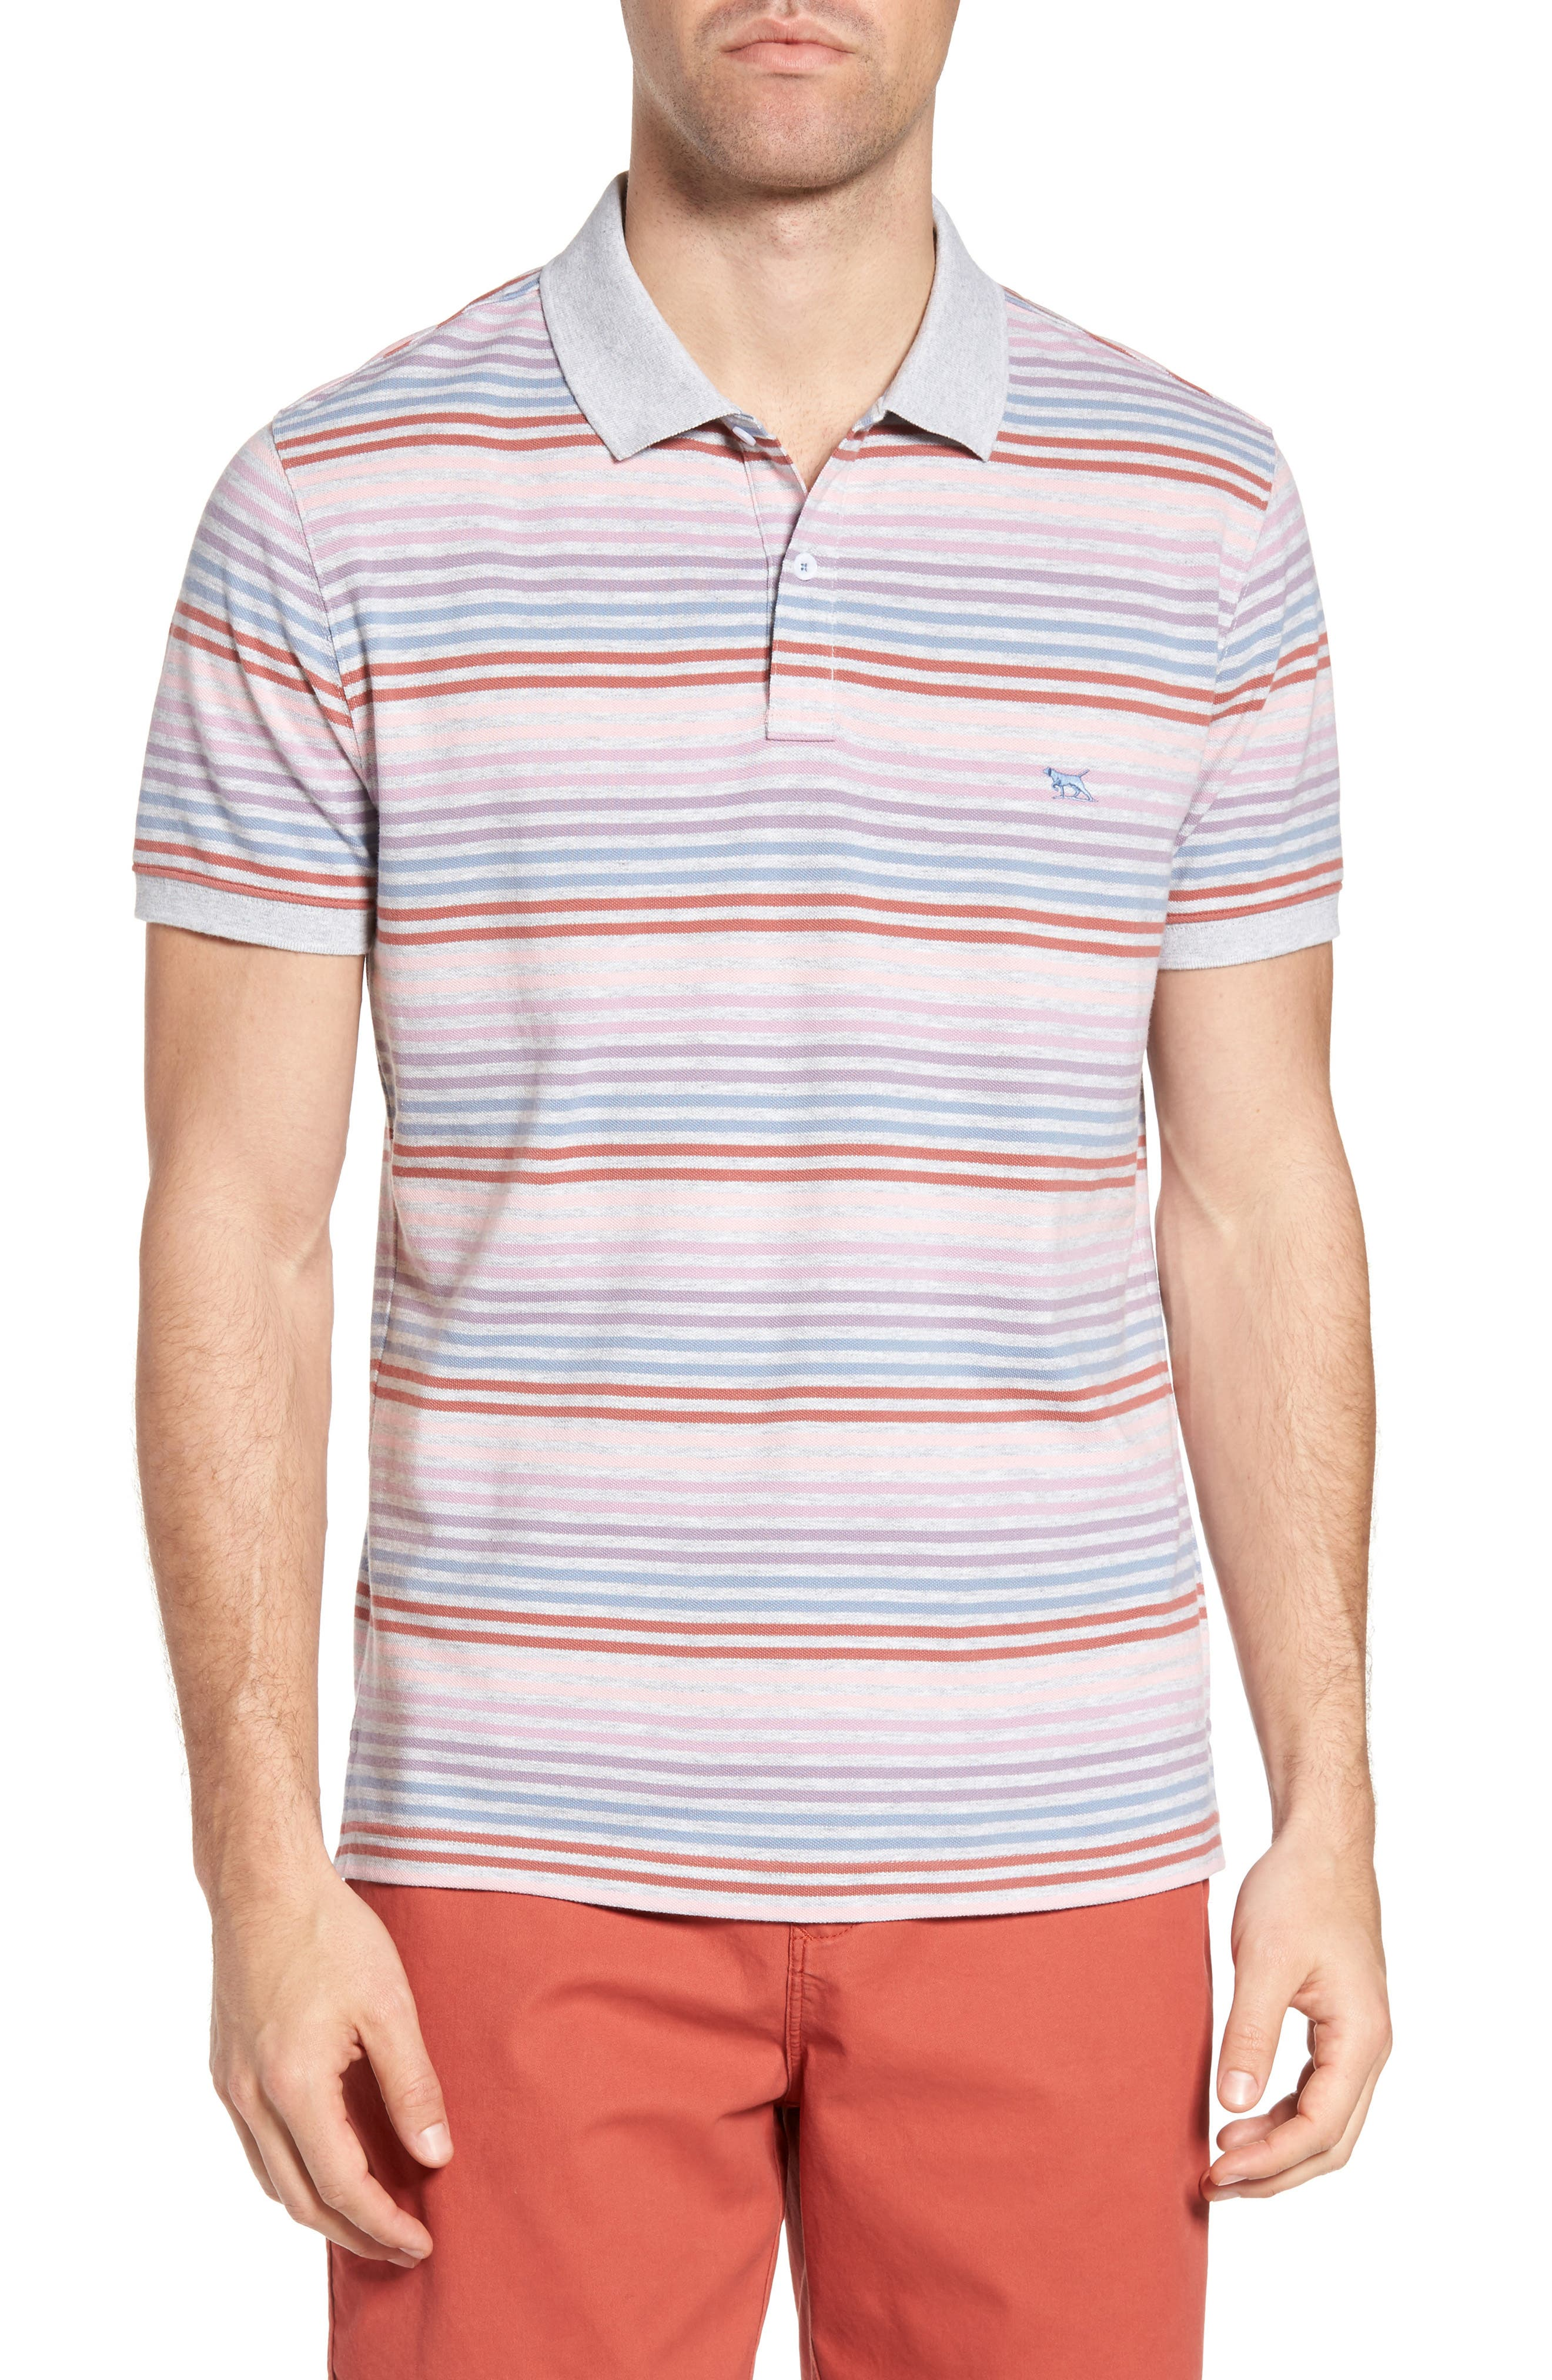 Kingseat Sports Fit Cotton Polo,                         Main,                         color, 581